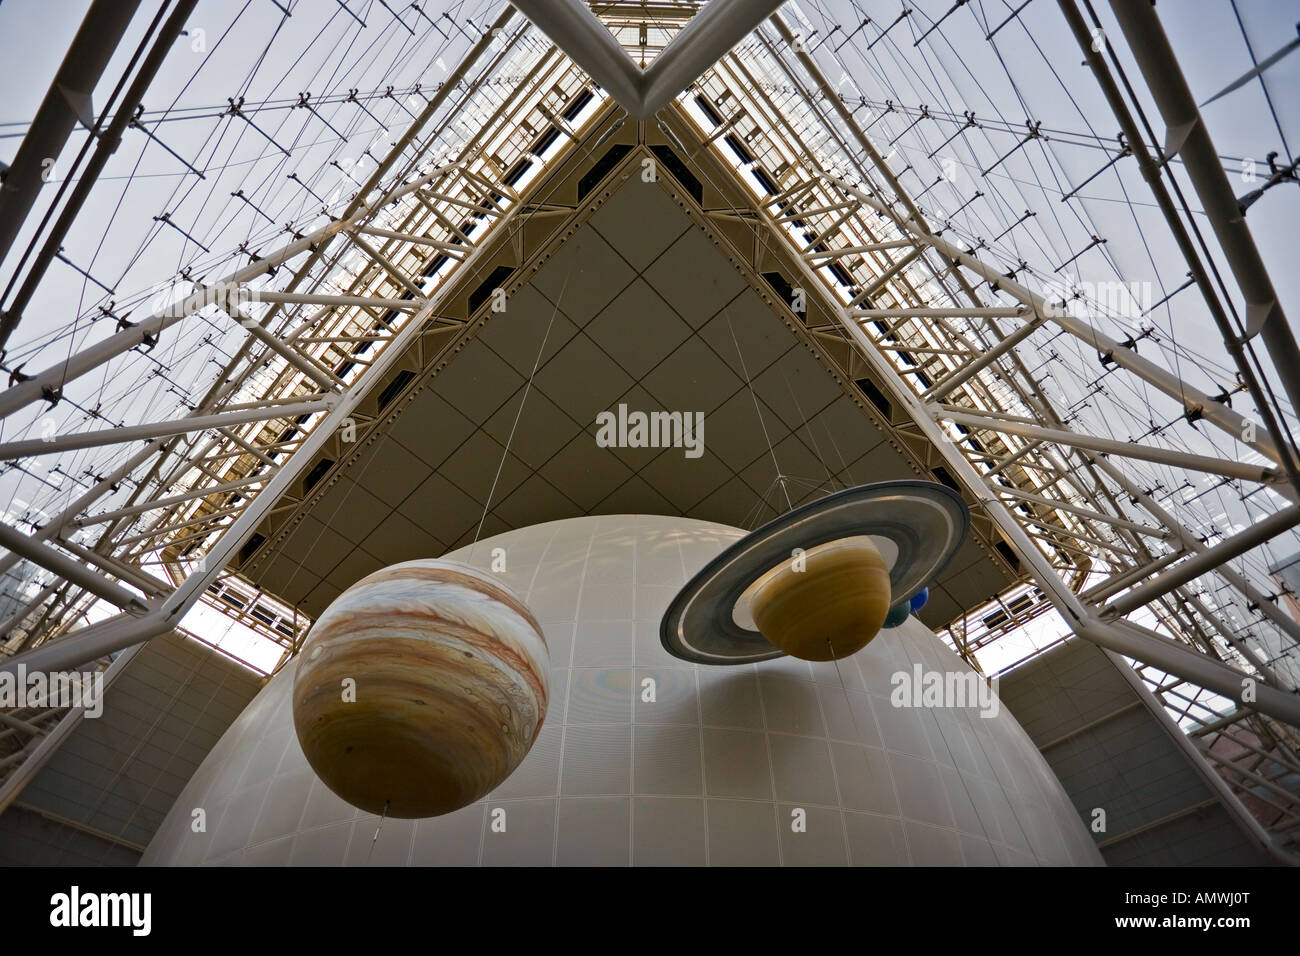 American Museum Of Natural History Space Theater Planetarium